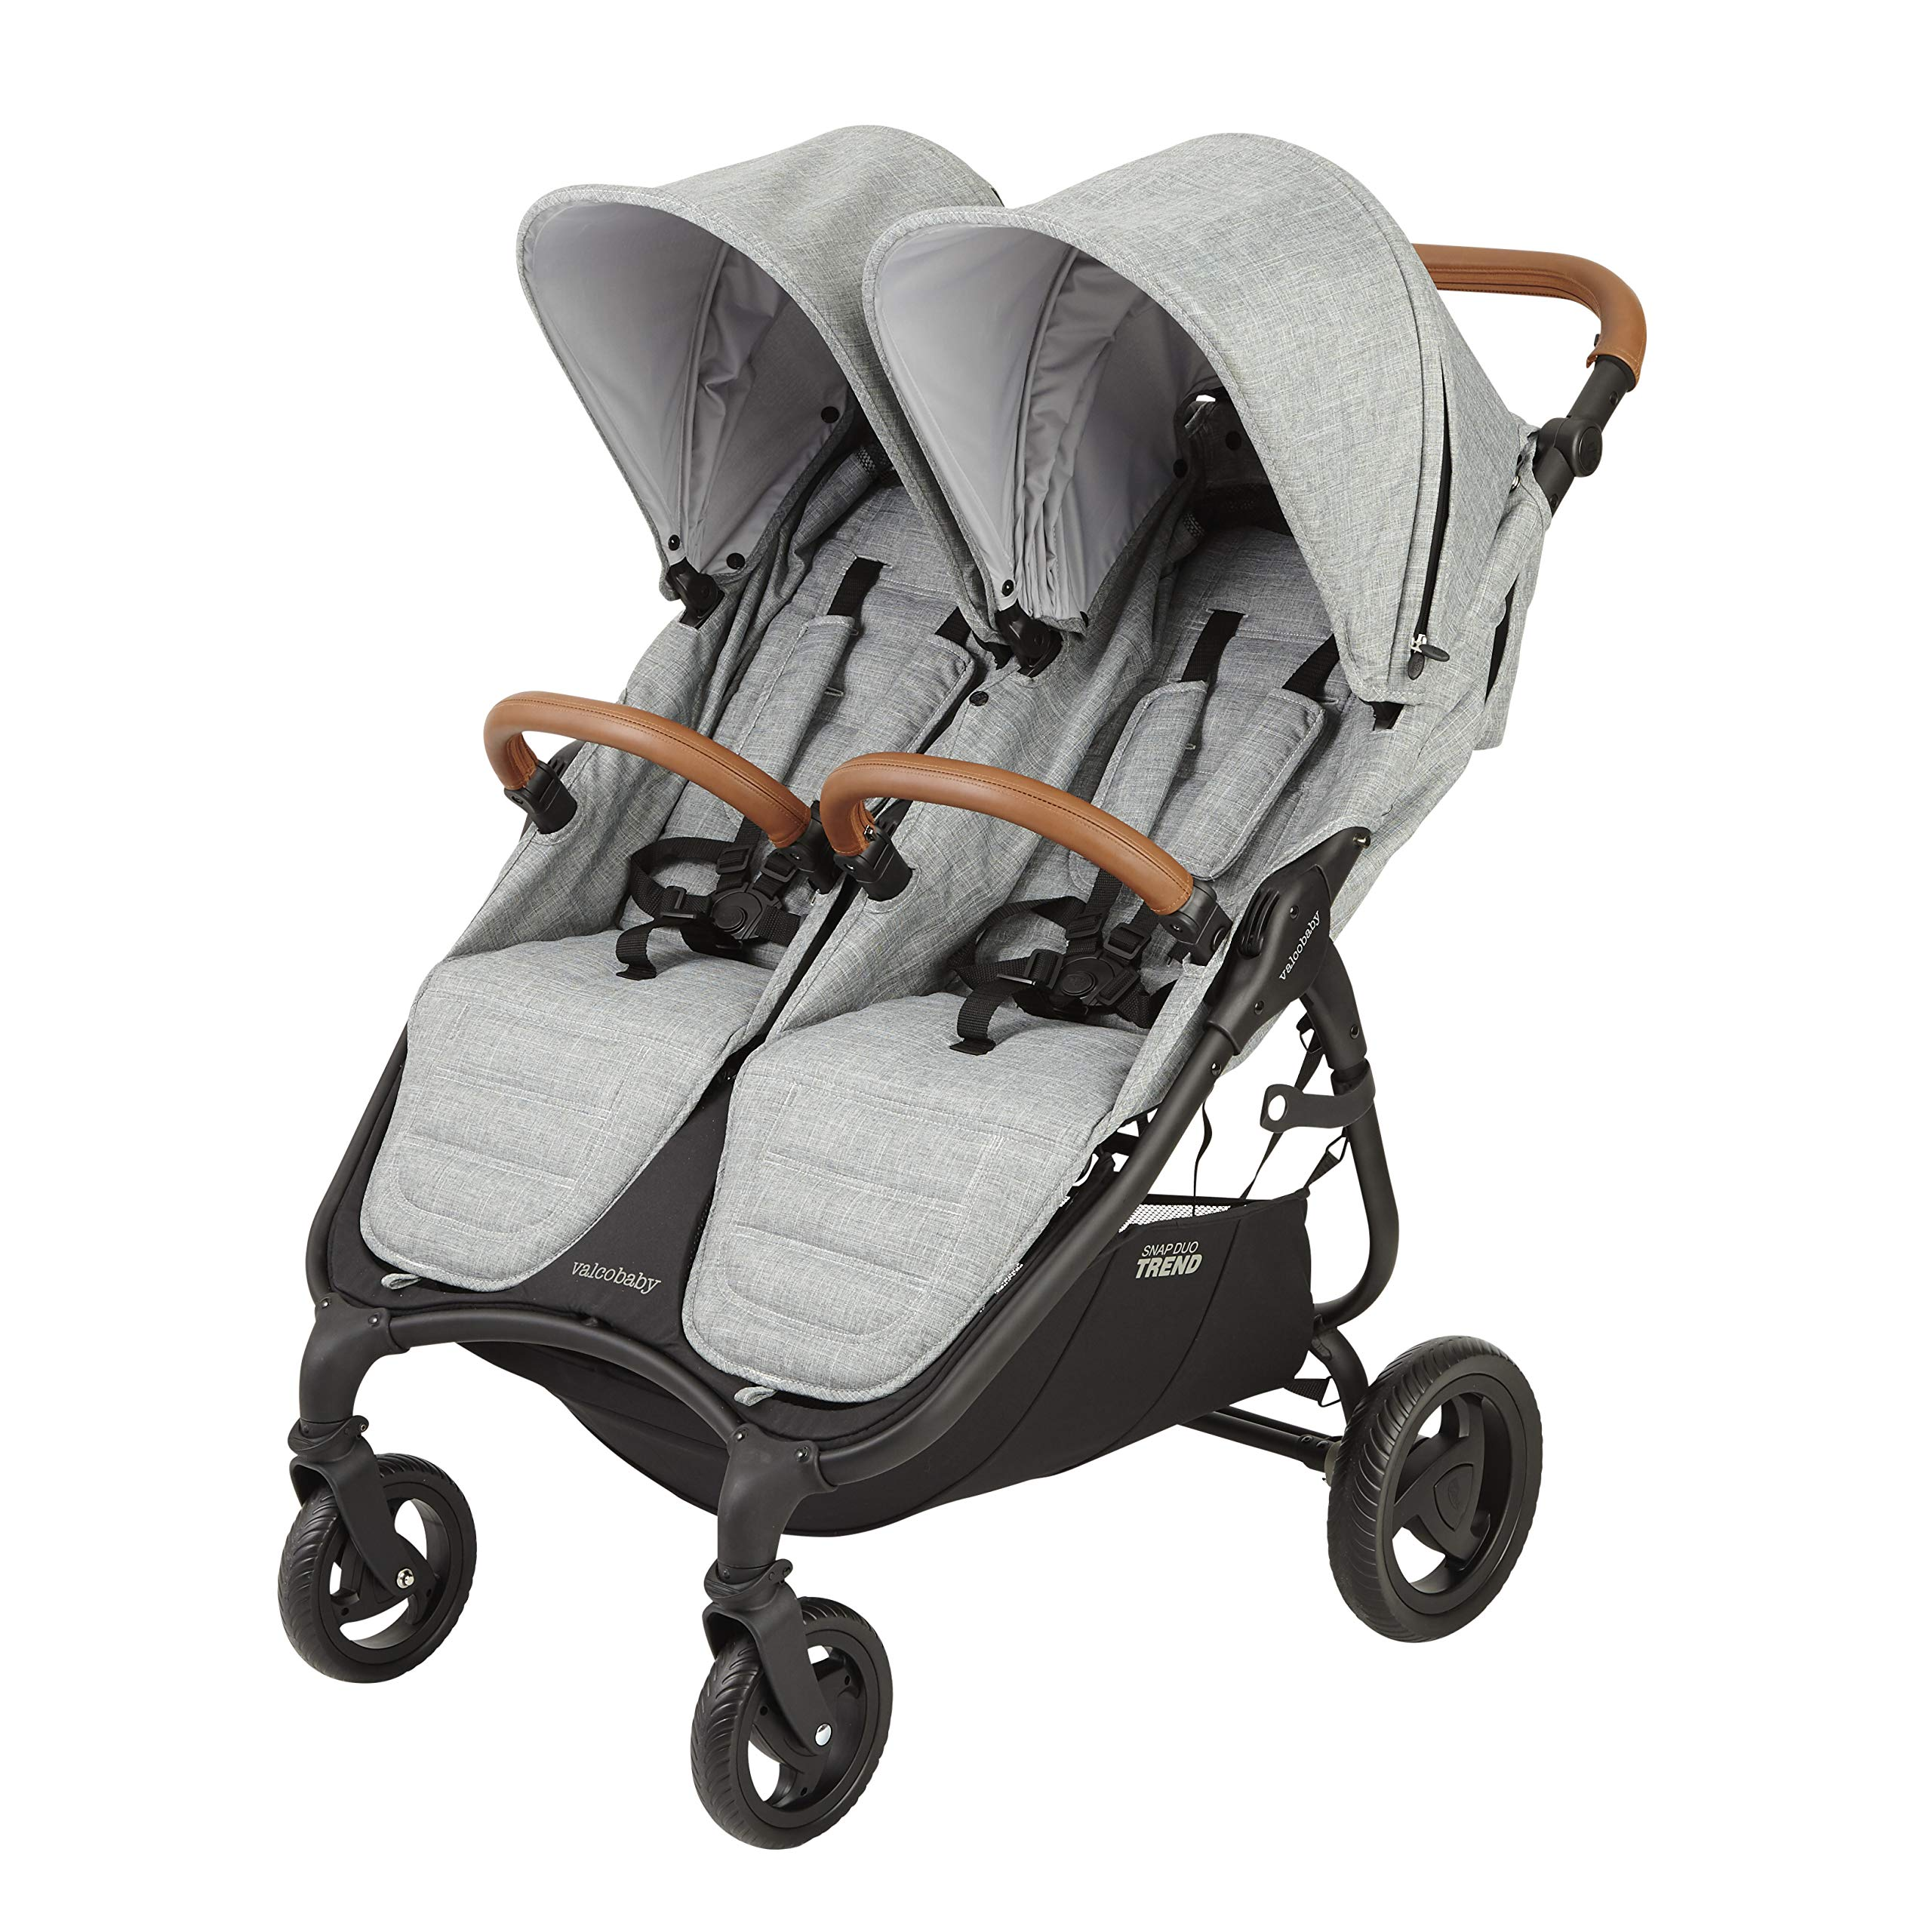 Valco Baby Snap Duo Trend Light Weight Double Stroller 2019 (Grey) by valco baby